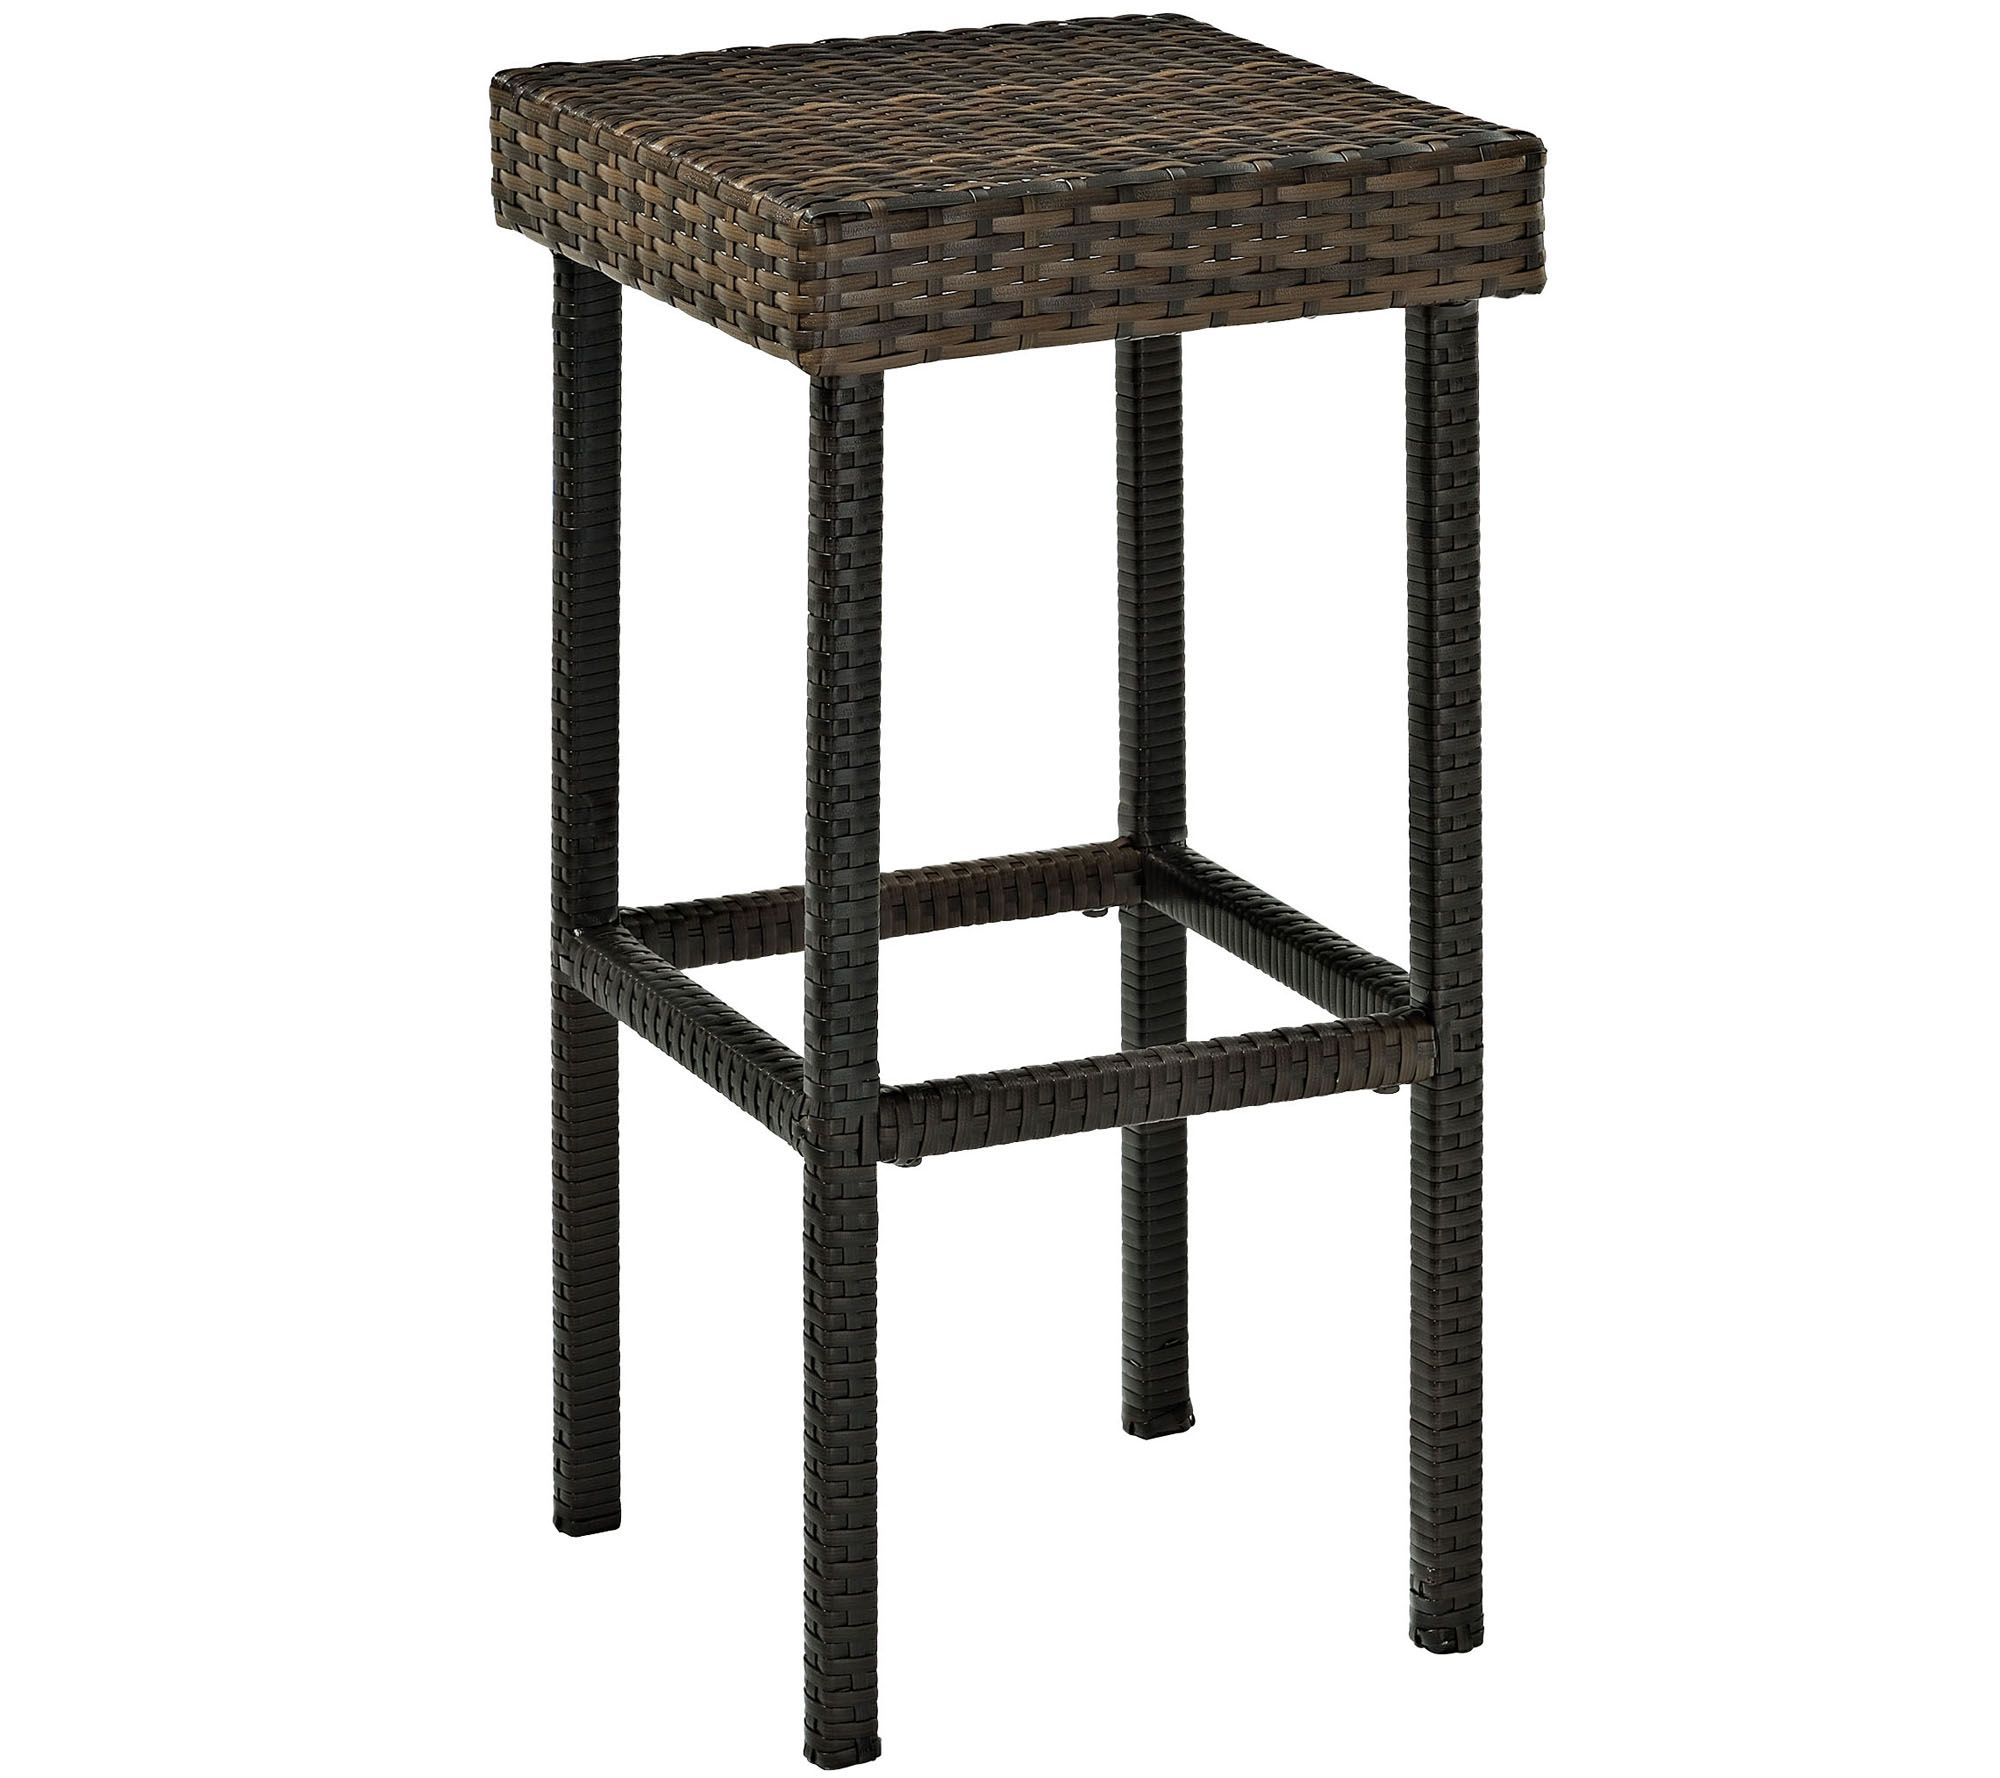 Palm Harbor Outdoor Wicker 29quot Bar Height Stool Set of 2  : h288569 from www.qvc.com size 2000 x 1778 jpeg 214kB